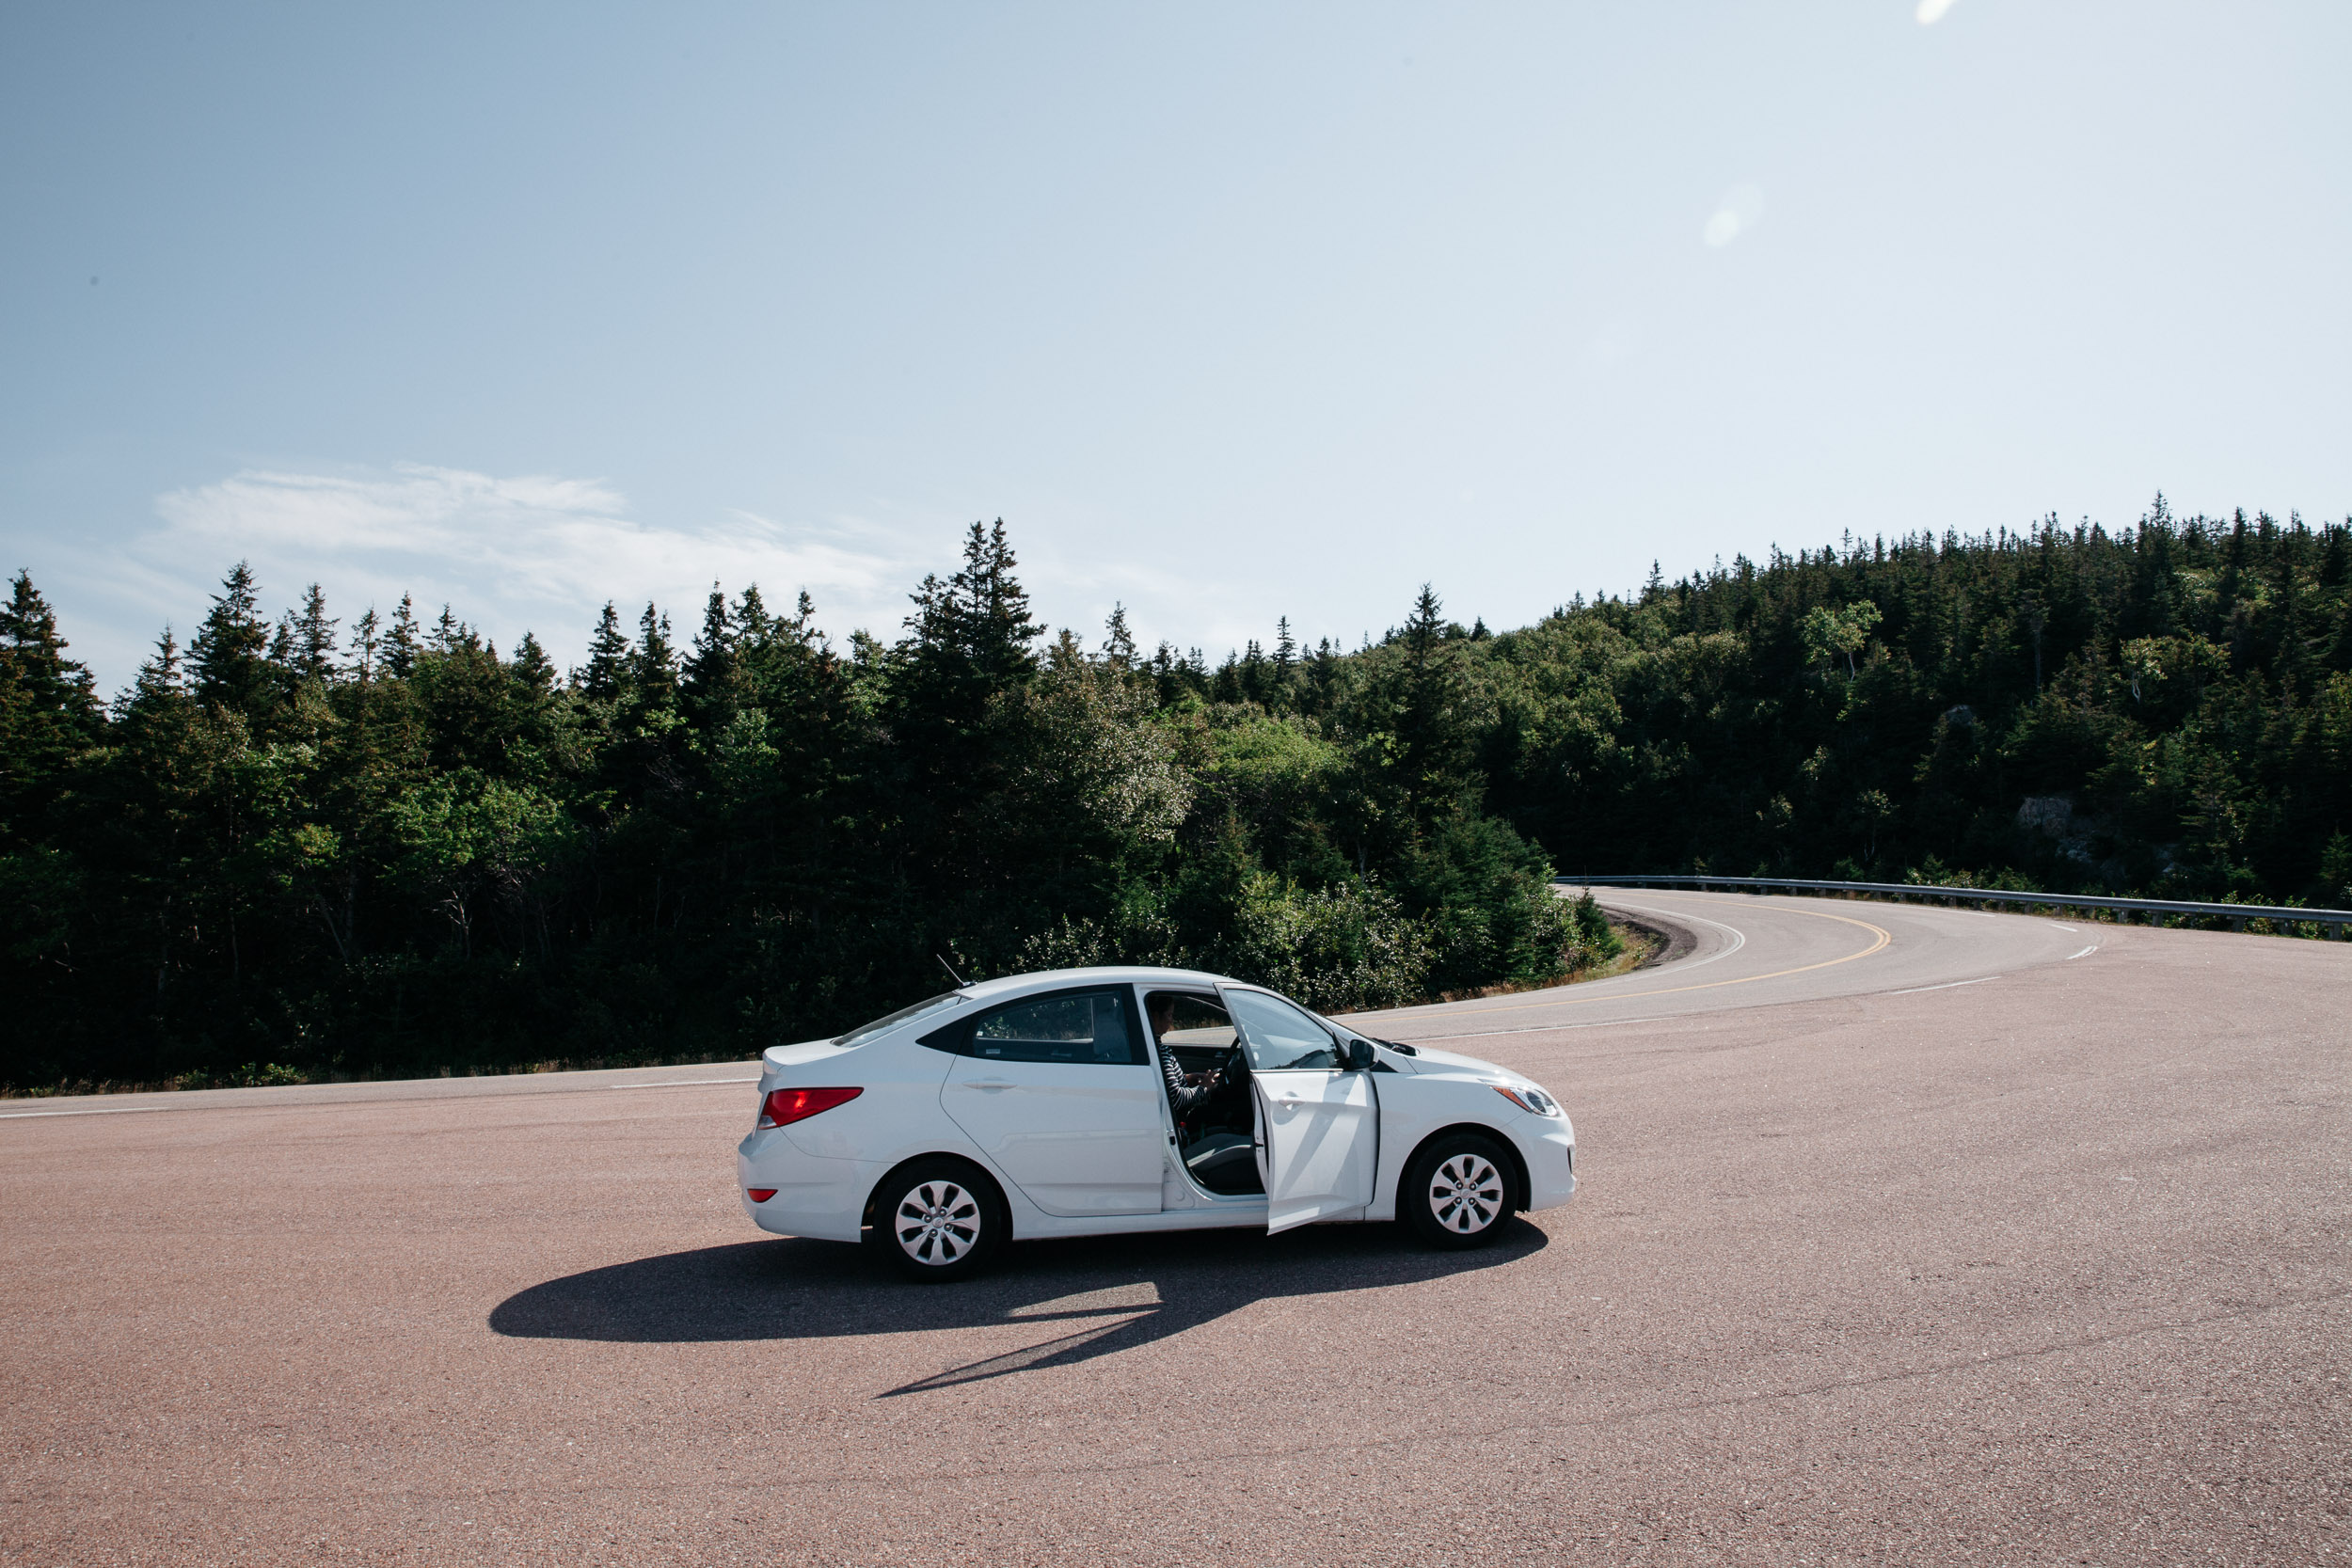 travel photography cape breton nova scotia for re:porter magazine